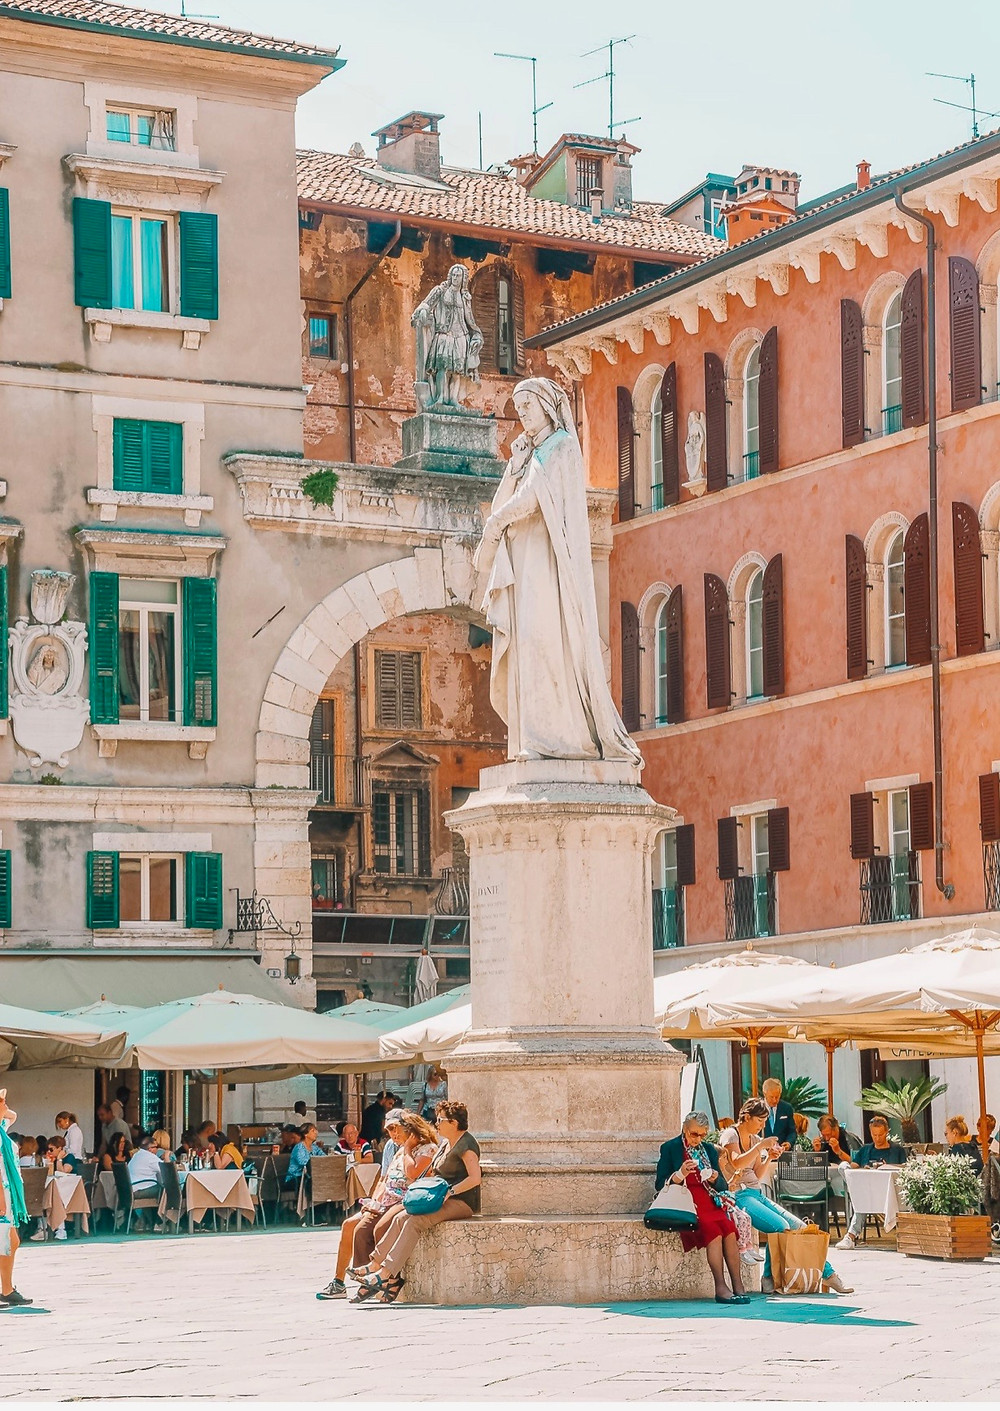 Piazza dei Signori, with a statue of the poet Dante